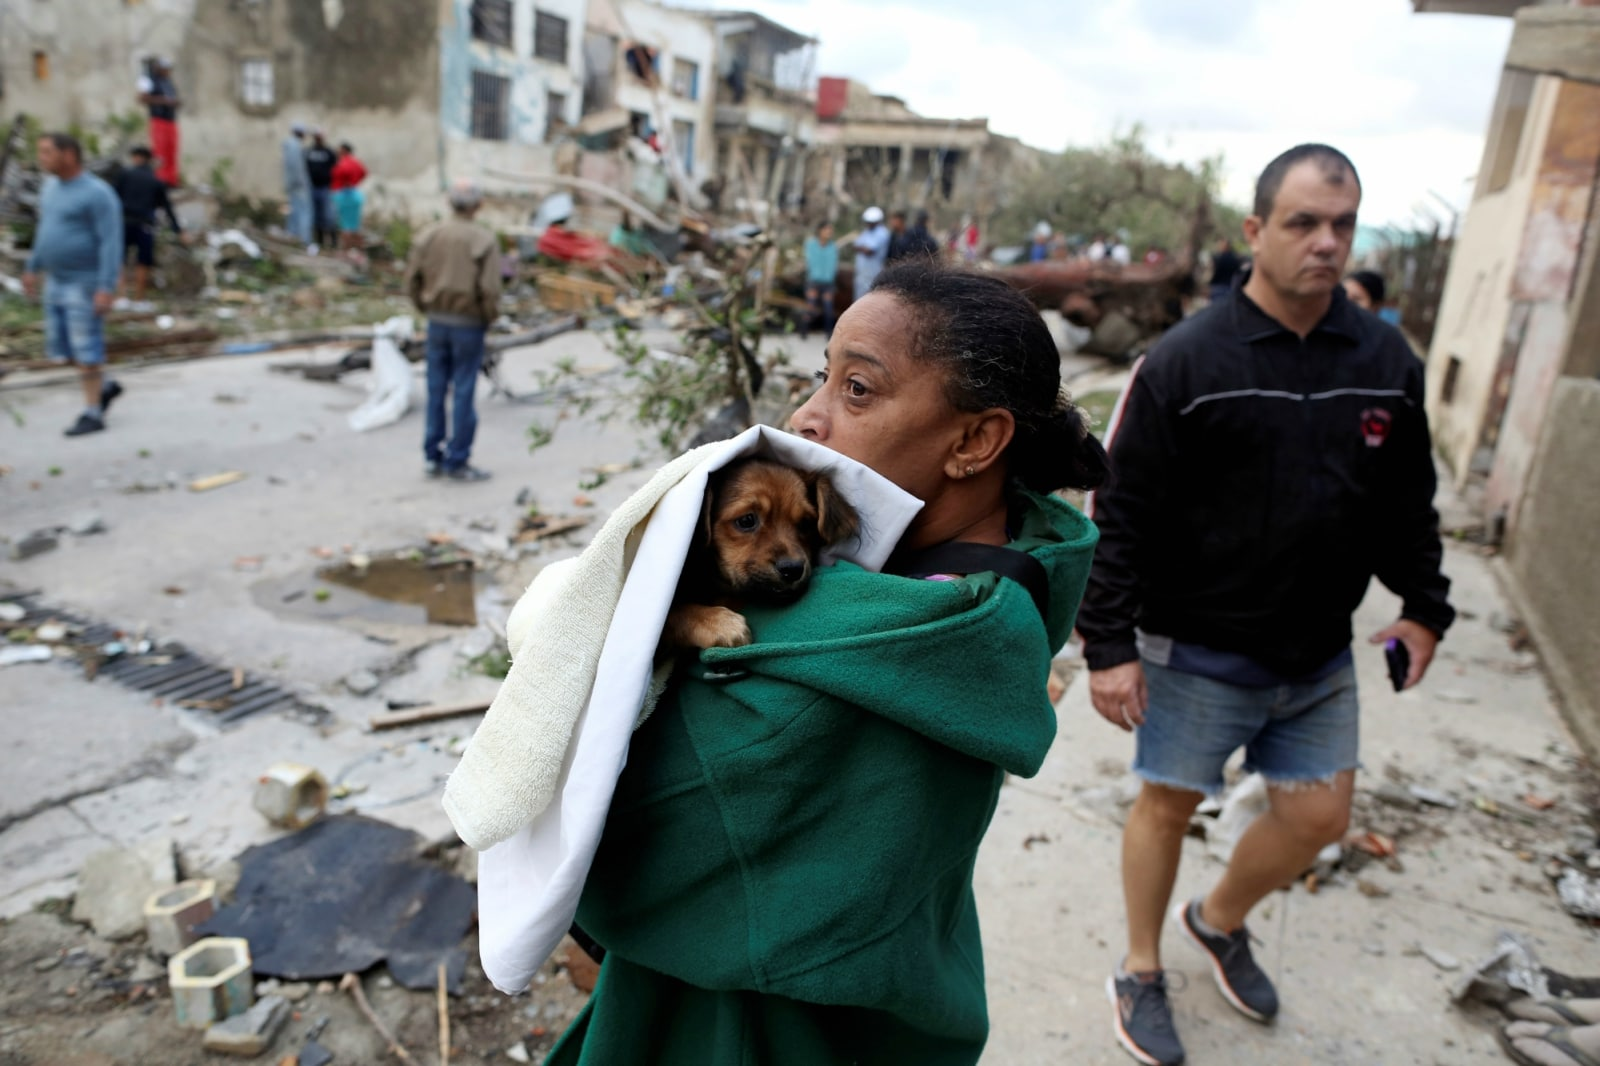 A woman holds her dog after a tornado ripped through a neighbourhood, in Havana, Cuba January 28, 2019. REUTERS/Fernando Medina